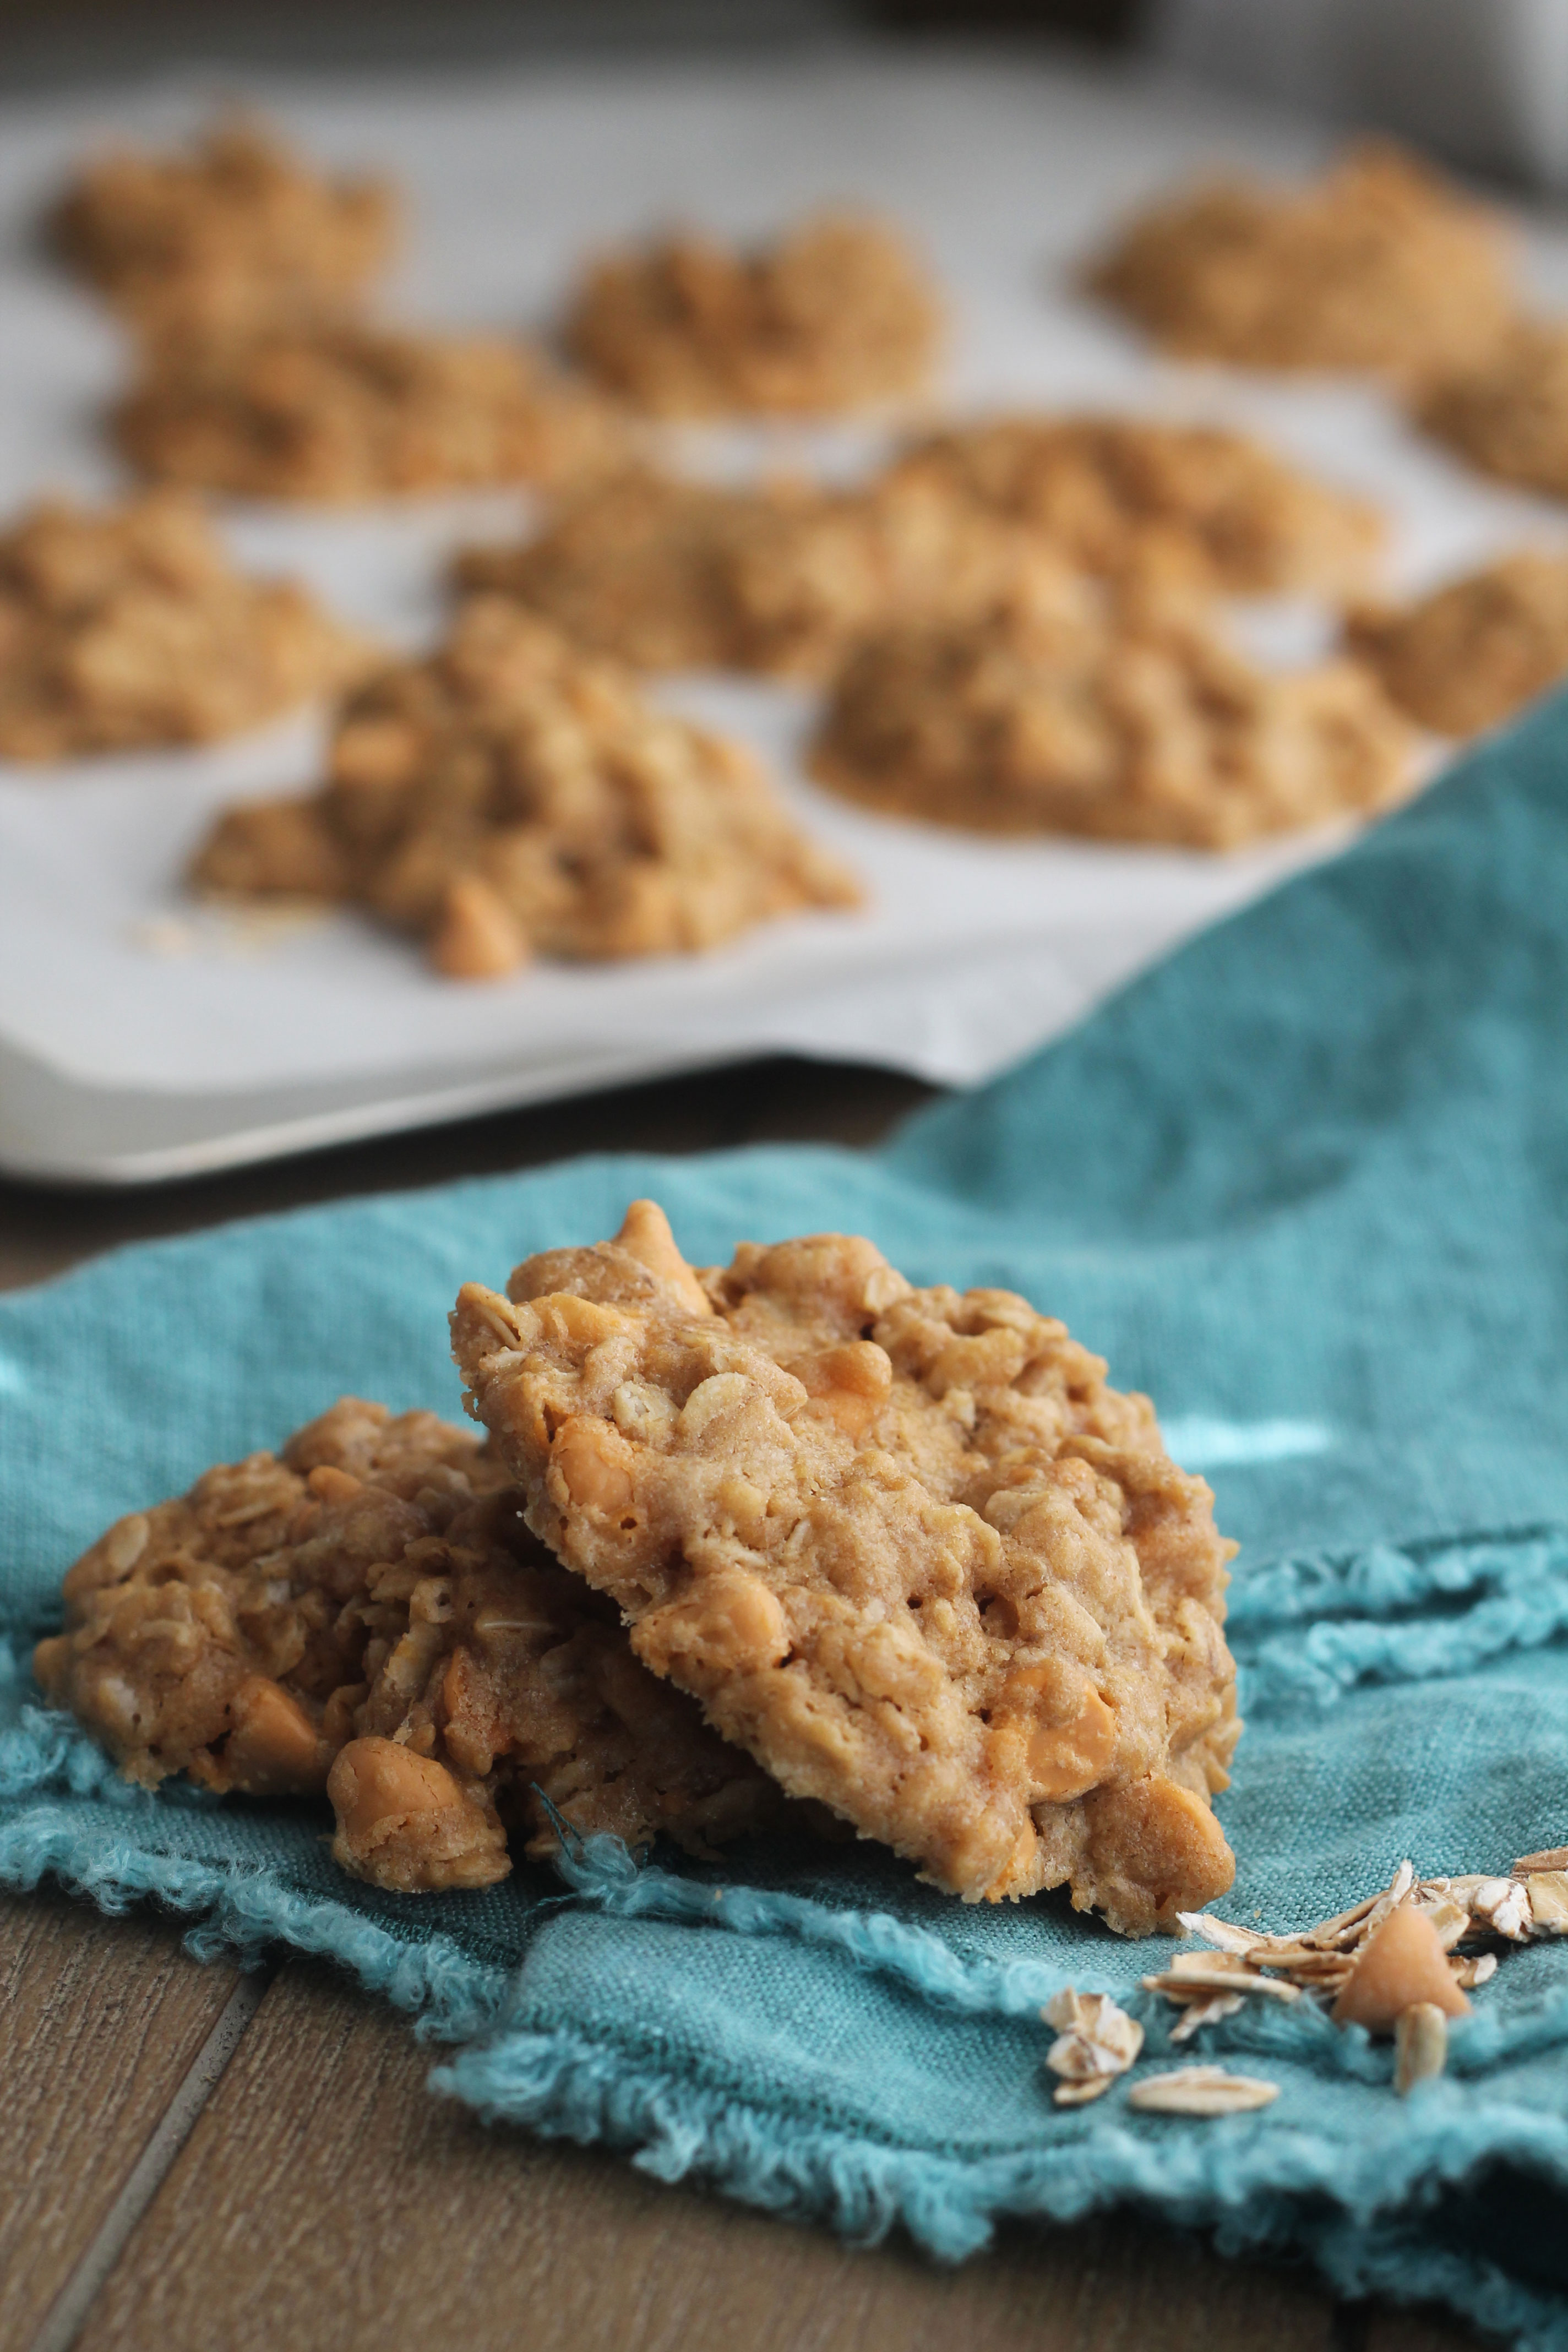 If you love the classic Oatmeal Cookies and like butterscotch then you will want to try these cookies out!